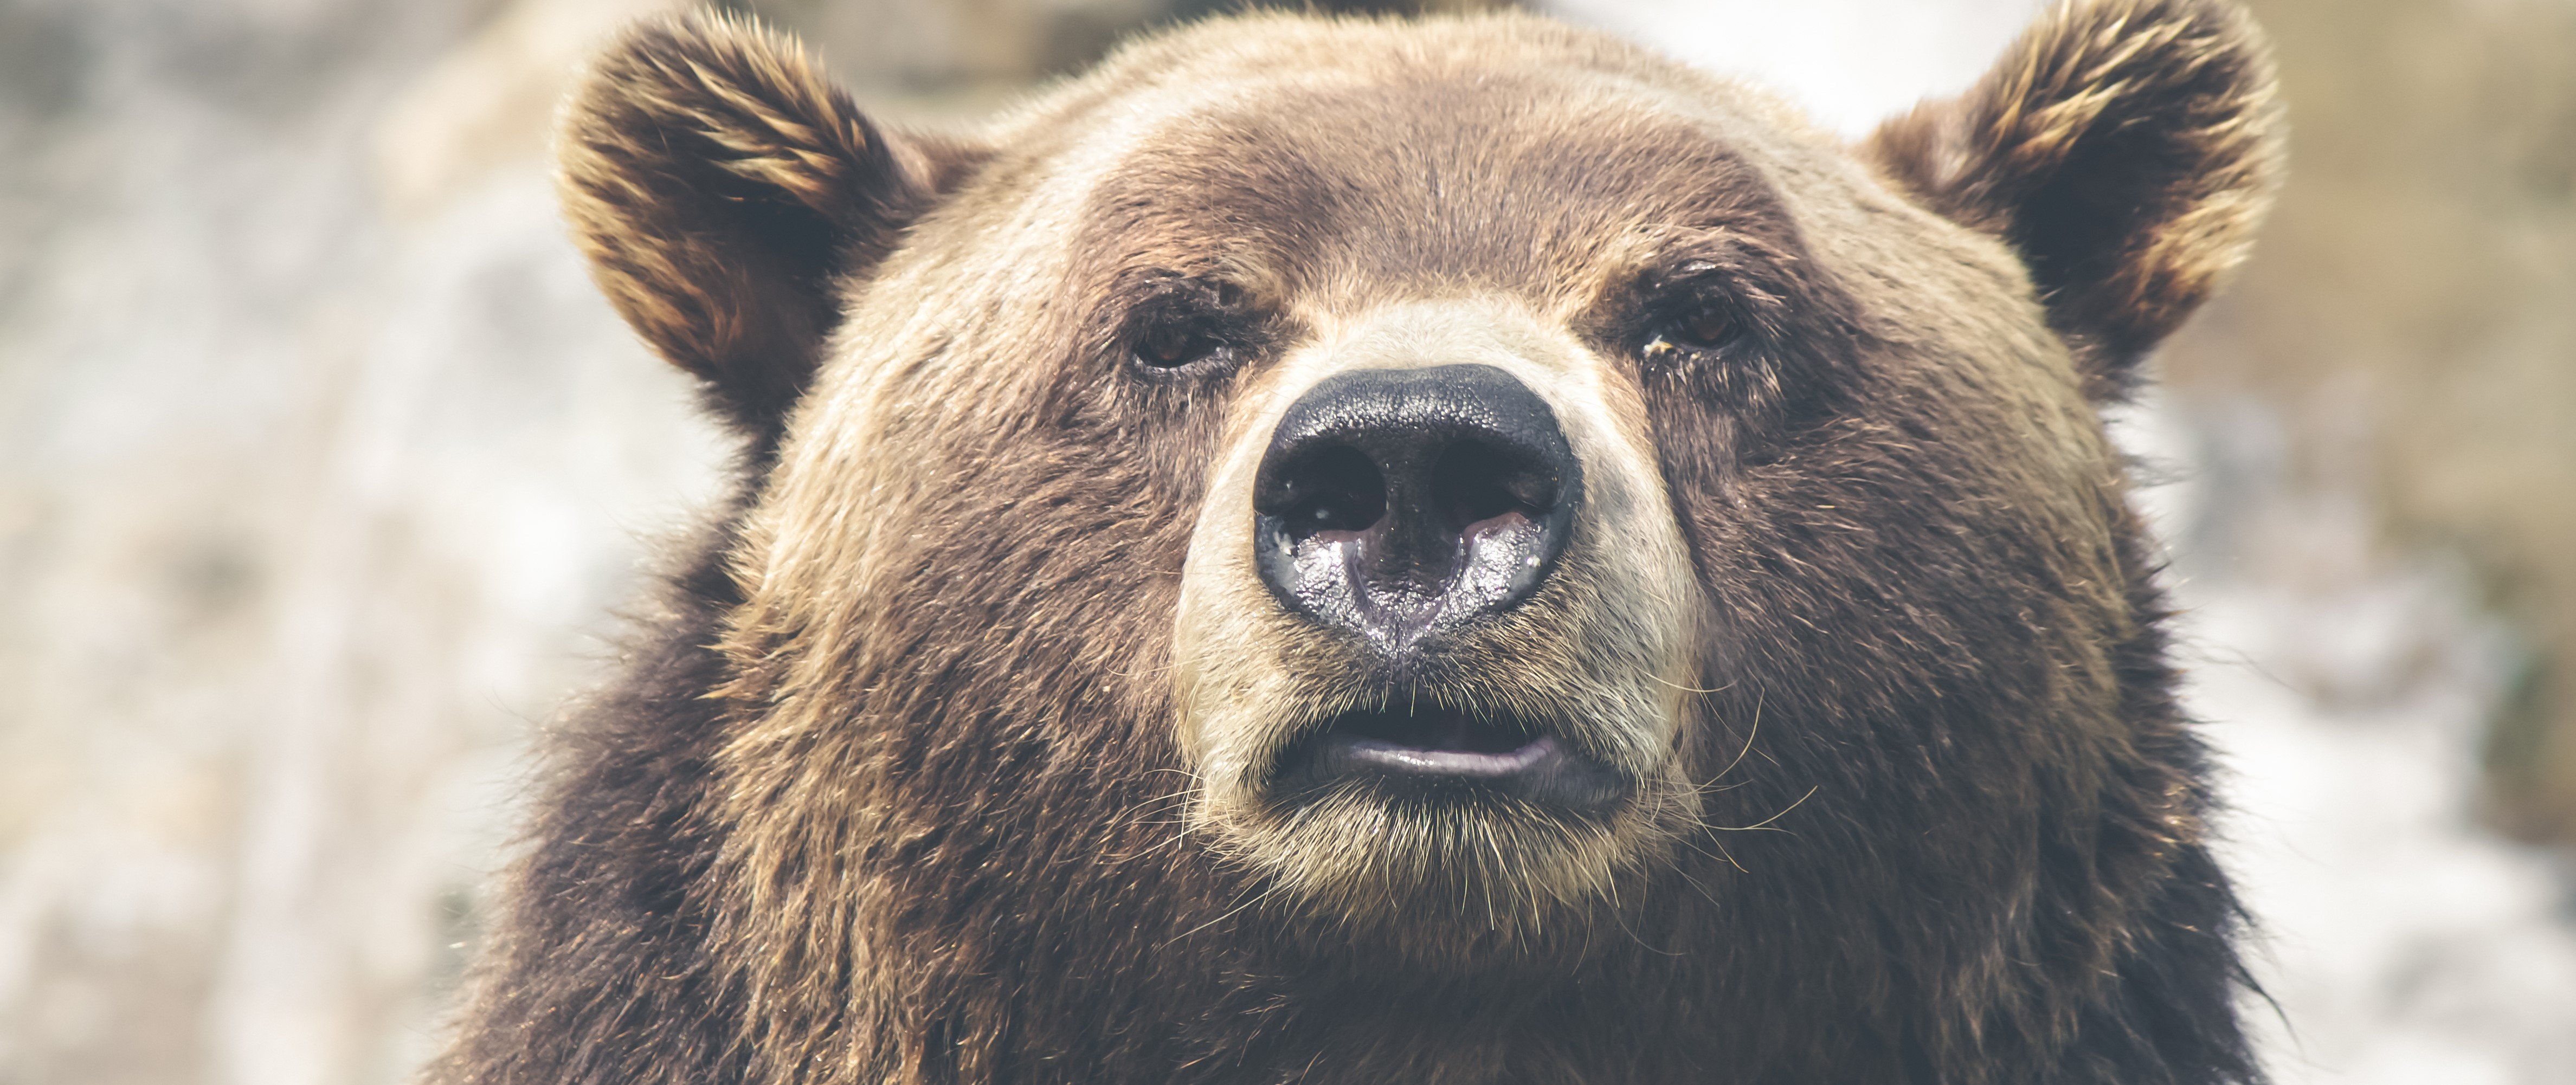 CEOs are like grizzly bears